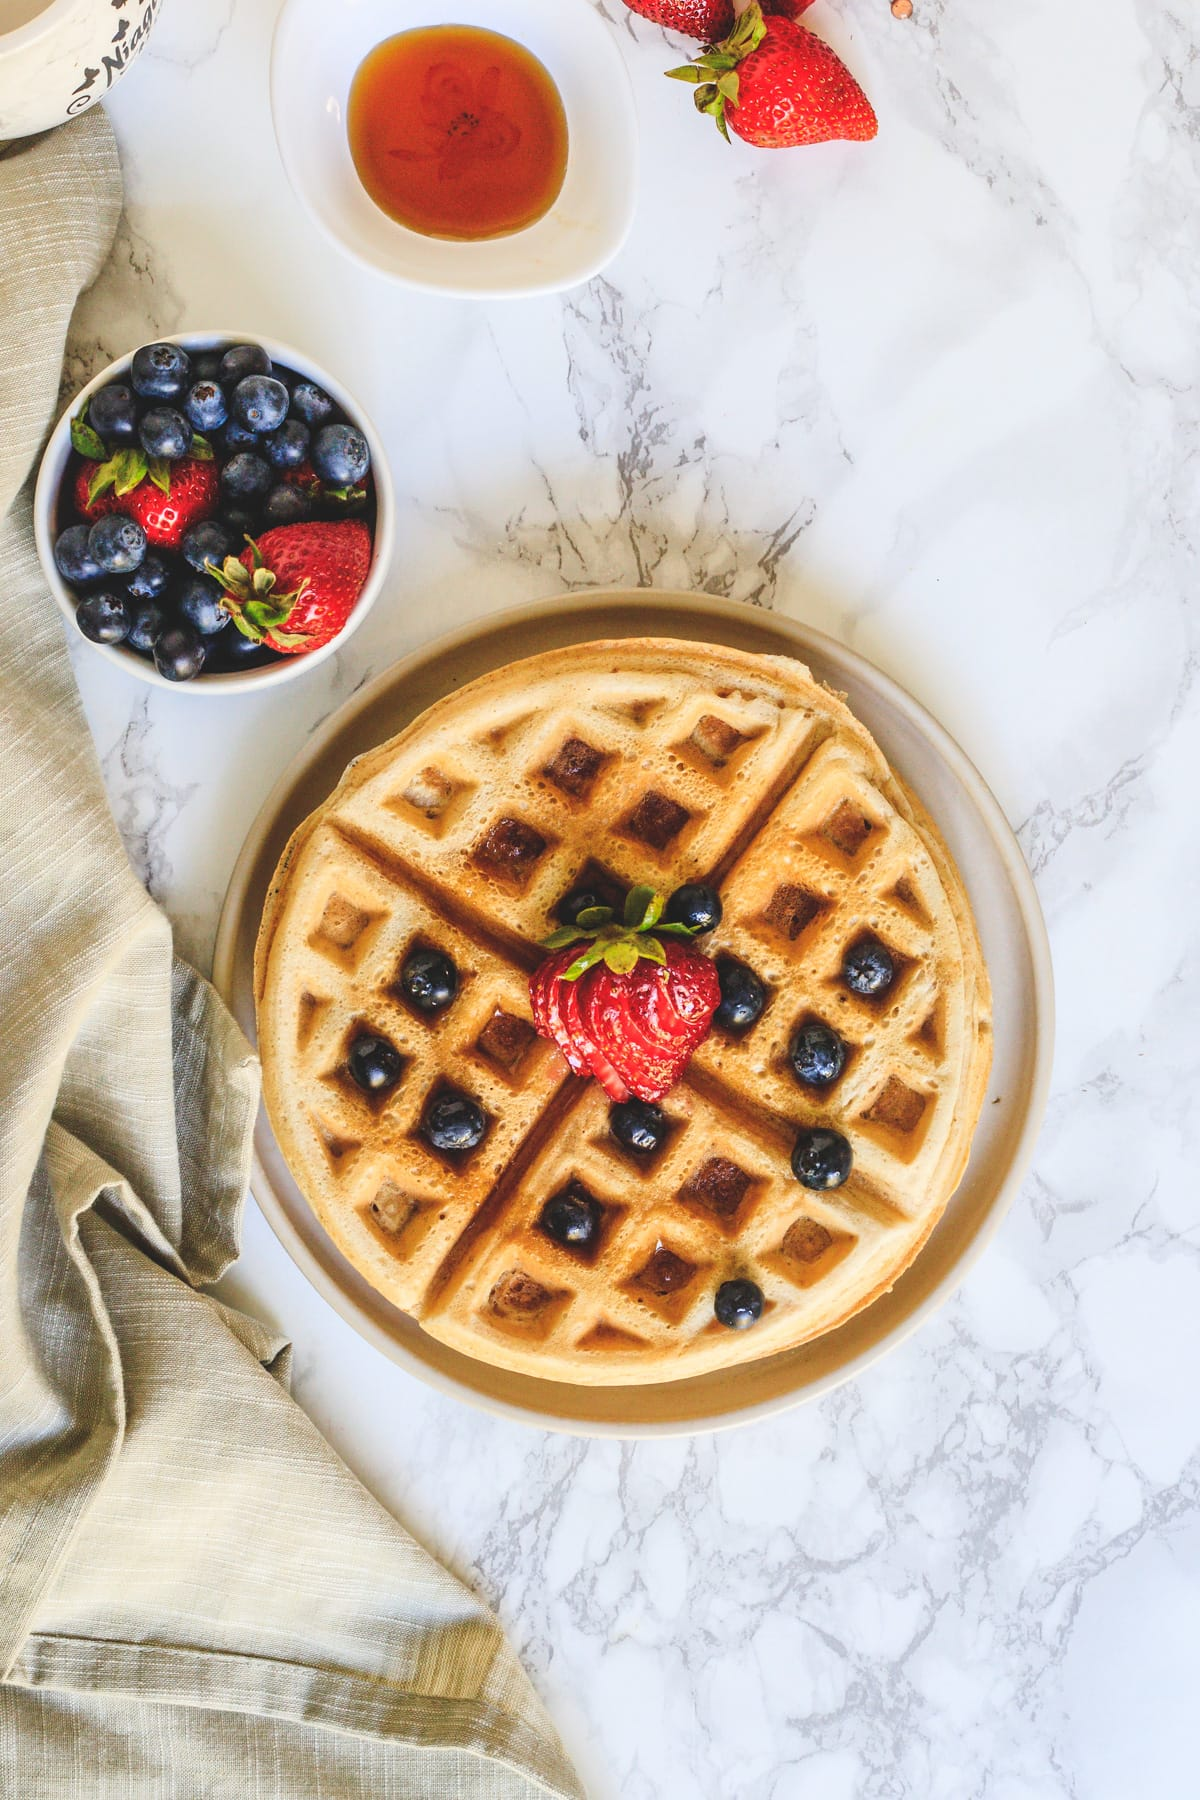 Top view of eggless waffles in a plate with berries